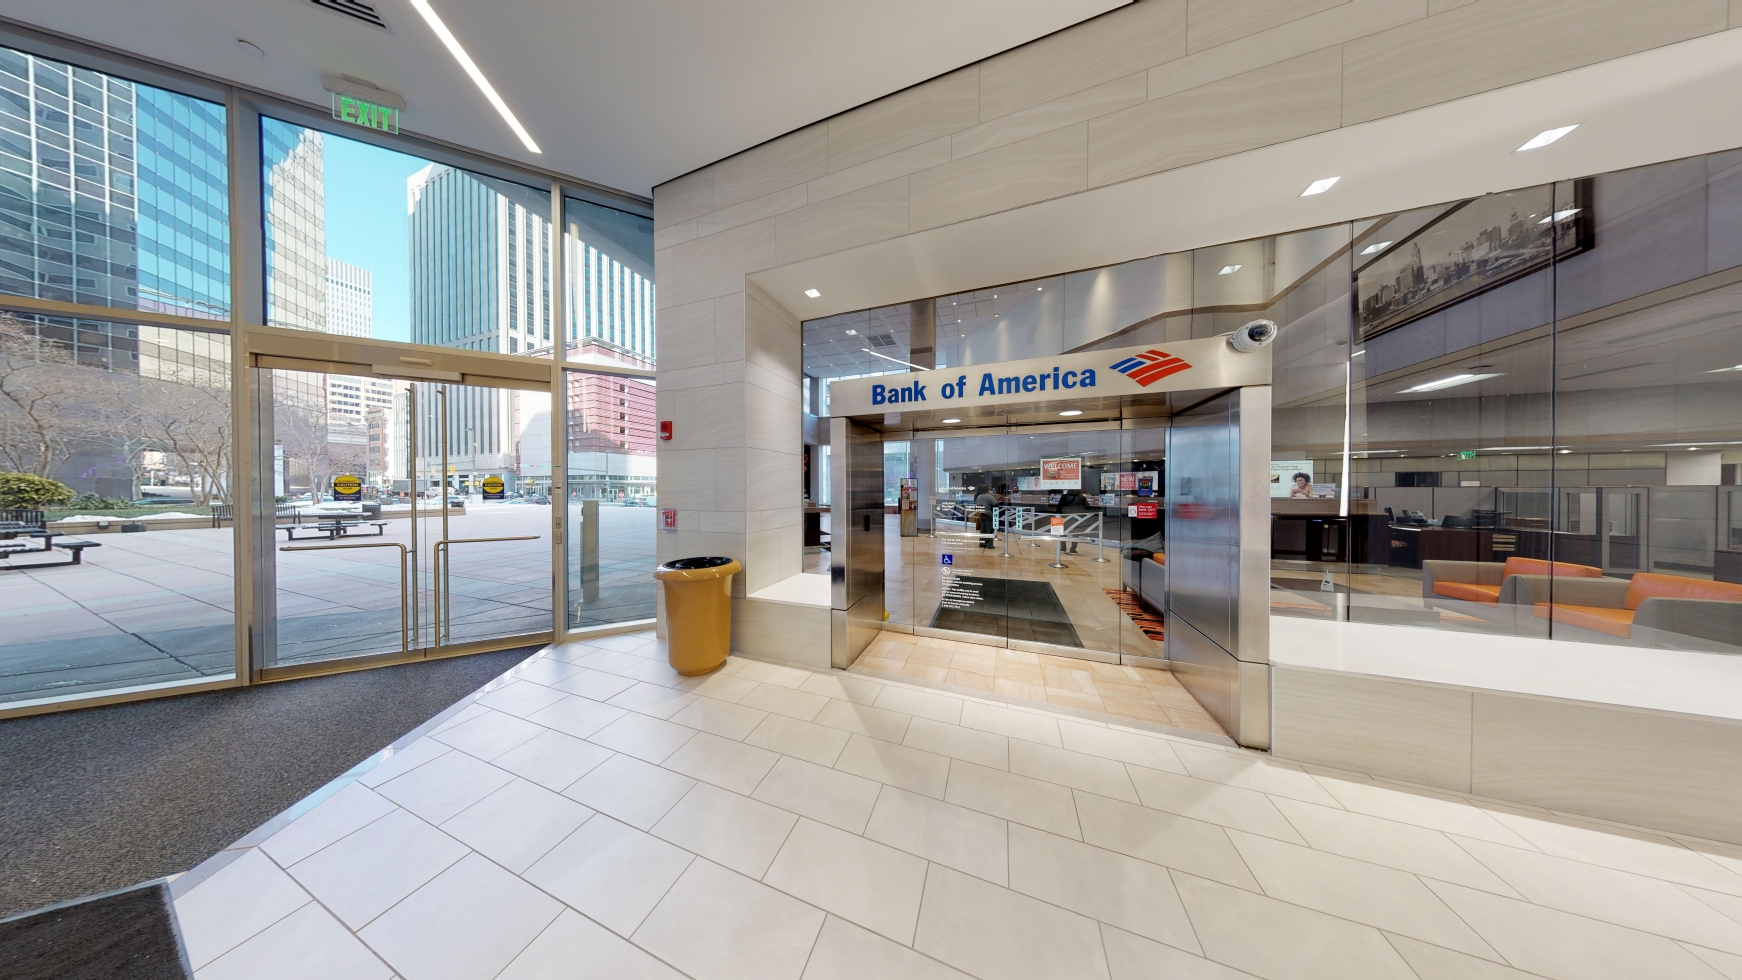 Bank of America financial center with walk-up ATM | 100 S Charles St, Baltimore, MD 21201